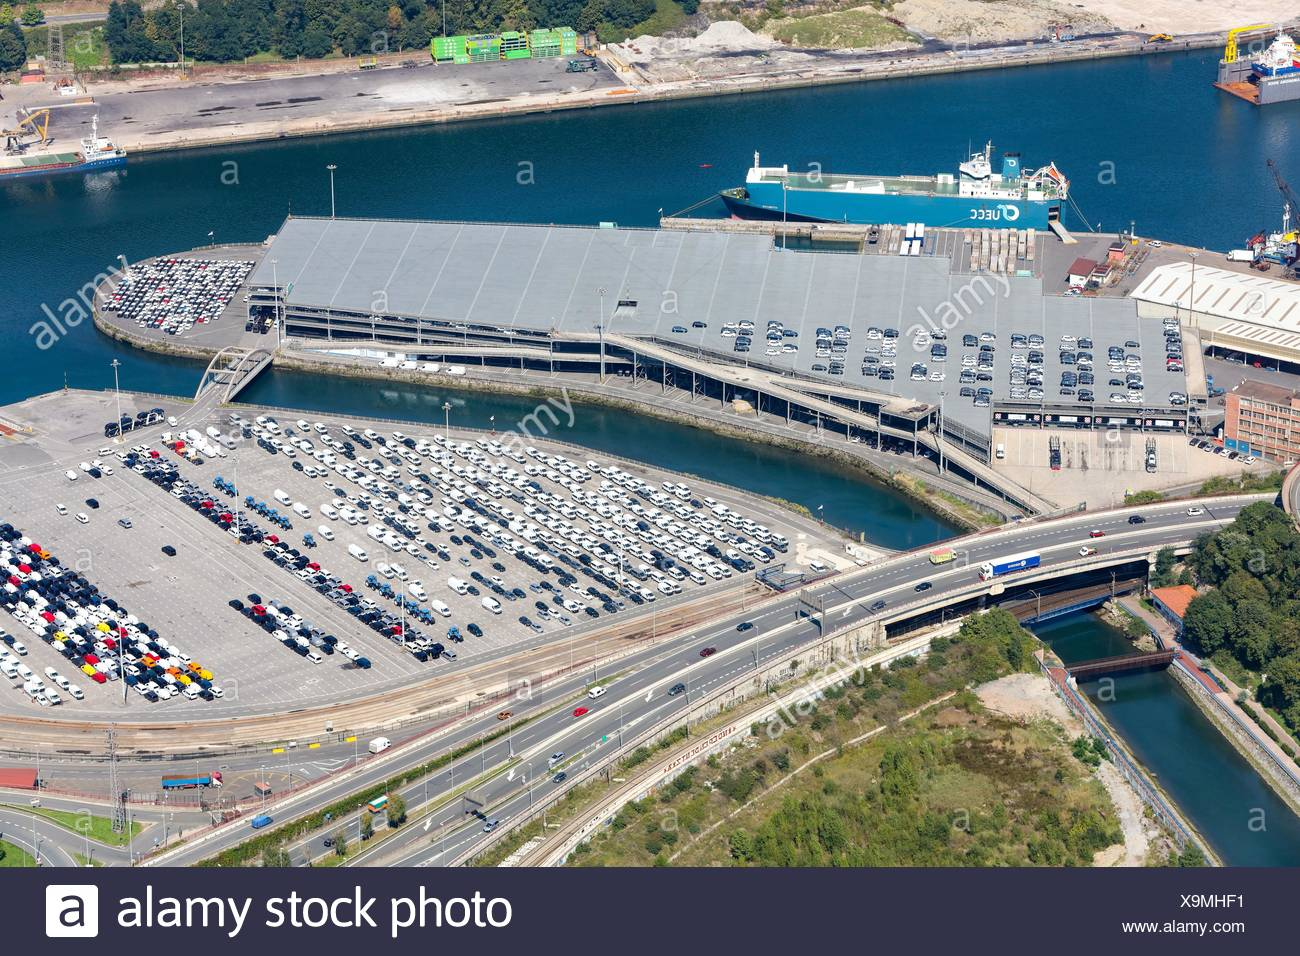 Aerial view, Export cars, Port of Pasajes, Gipuzkoa, Basque Country, Spain. - Stock Image